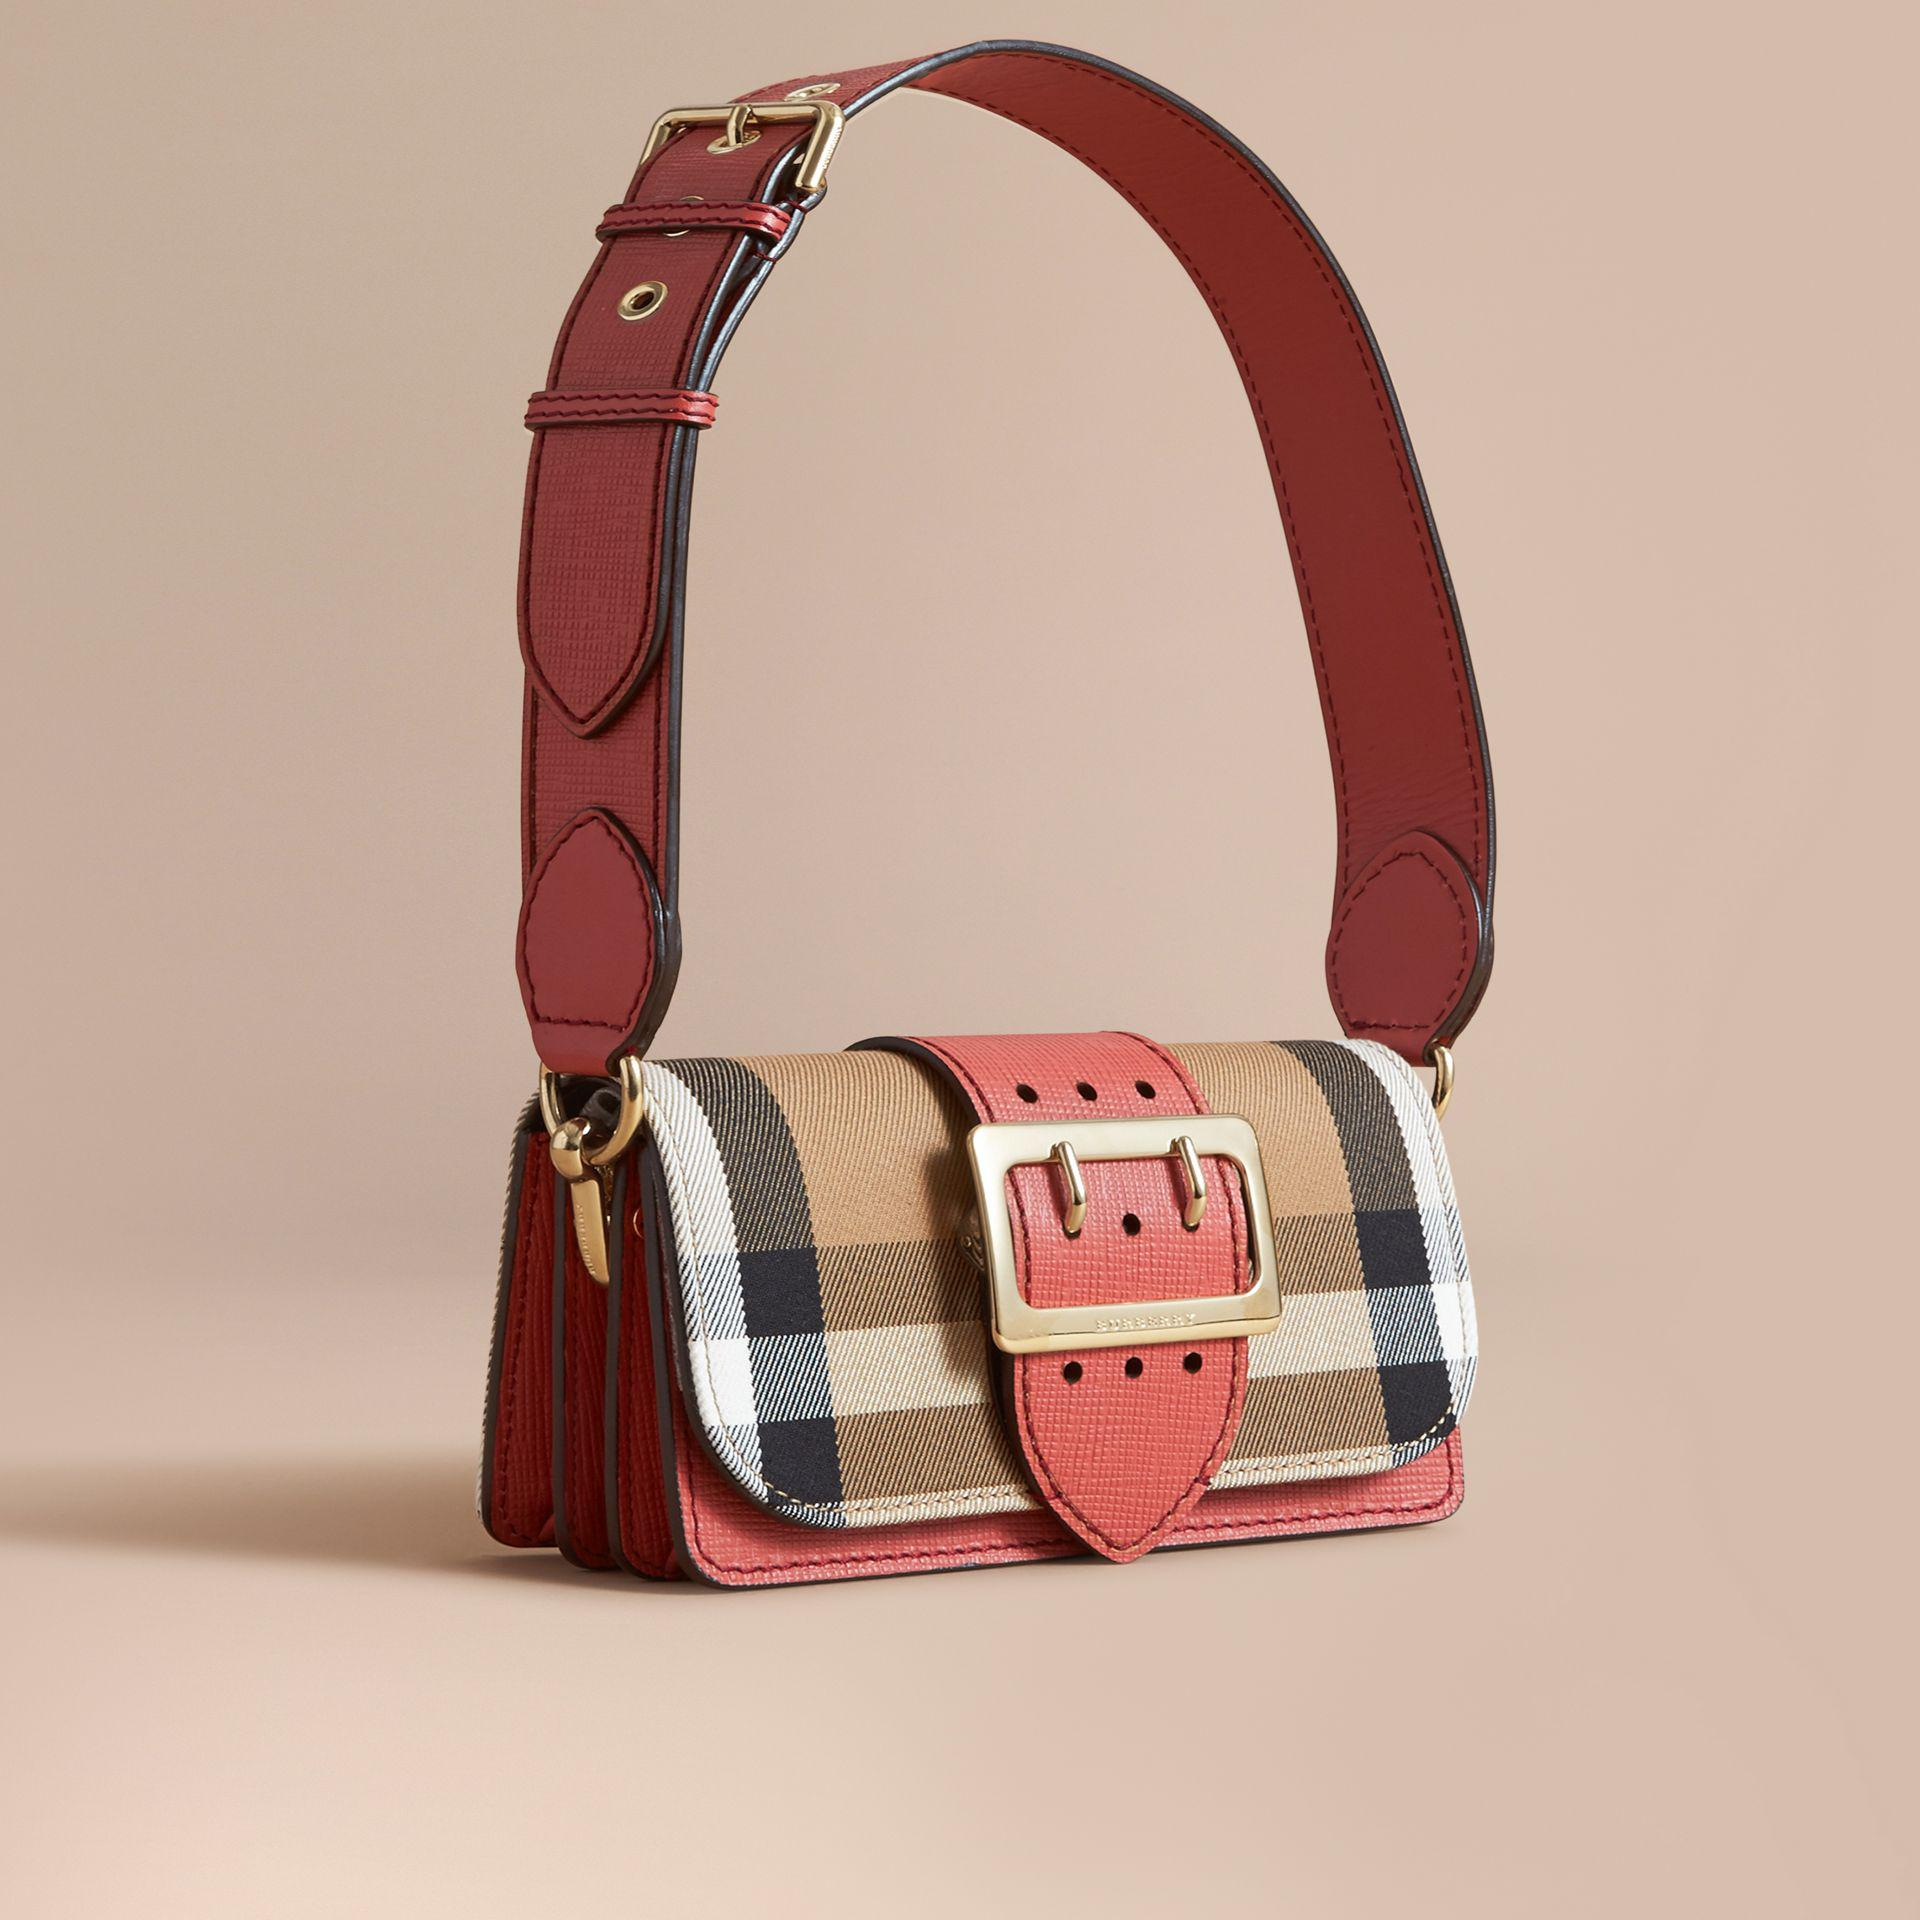 Burberry The Small Buckle Bag In House Check And Leather Cinnamon ... 4cad380f0f